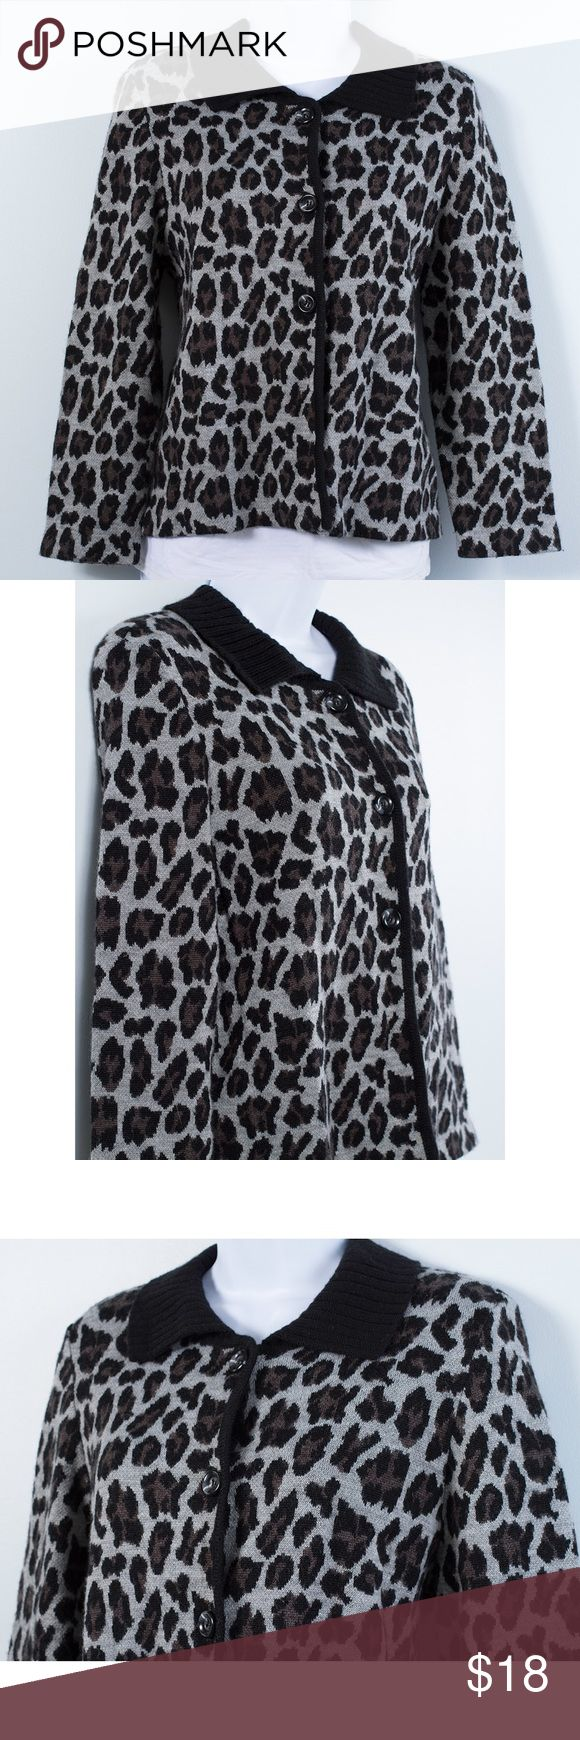 Rafaella Button Front Sweater Perfect weight sweater for fall.Great addition to any wardrobe.Animal print sweater with three button front closure.Excellent condition.Women's size medium. Rafaella Sweaters